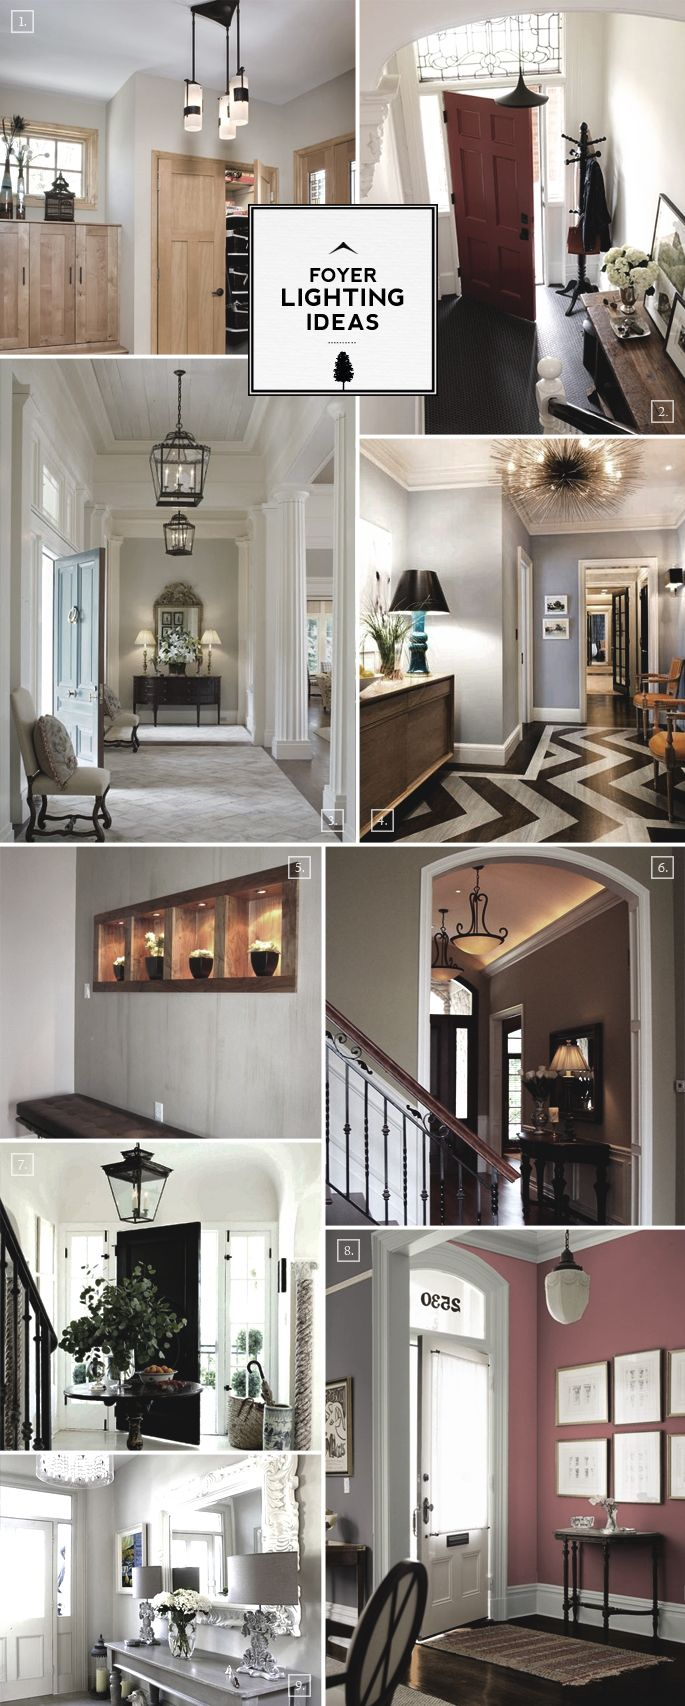 Foyer hallway lighting traditional entry chicago by tower - Entry Foyer Lighting Ideas For Large And Small Spaces